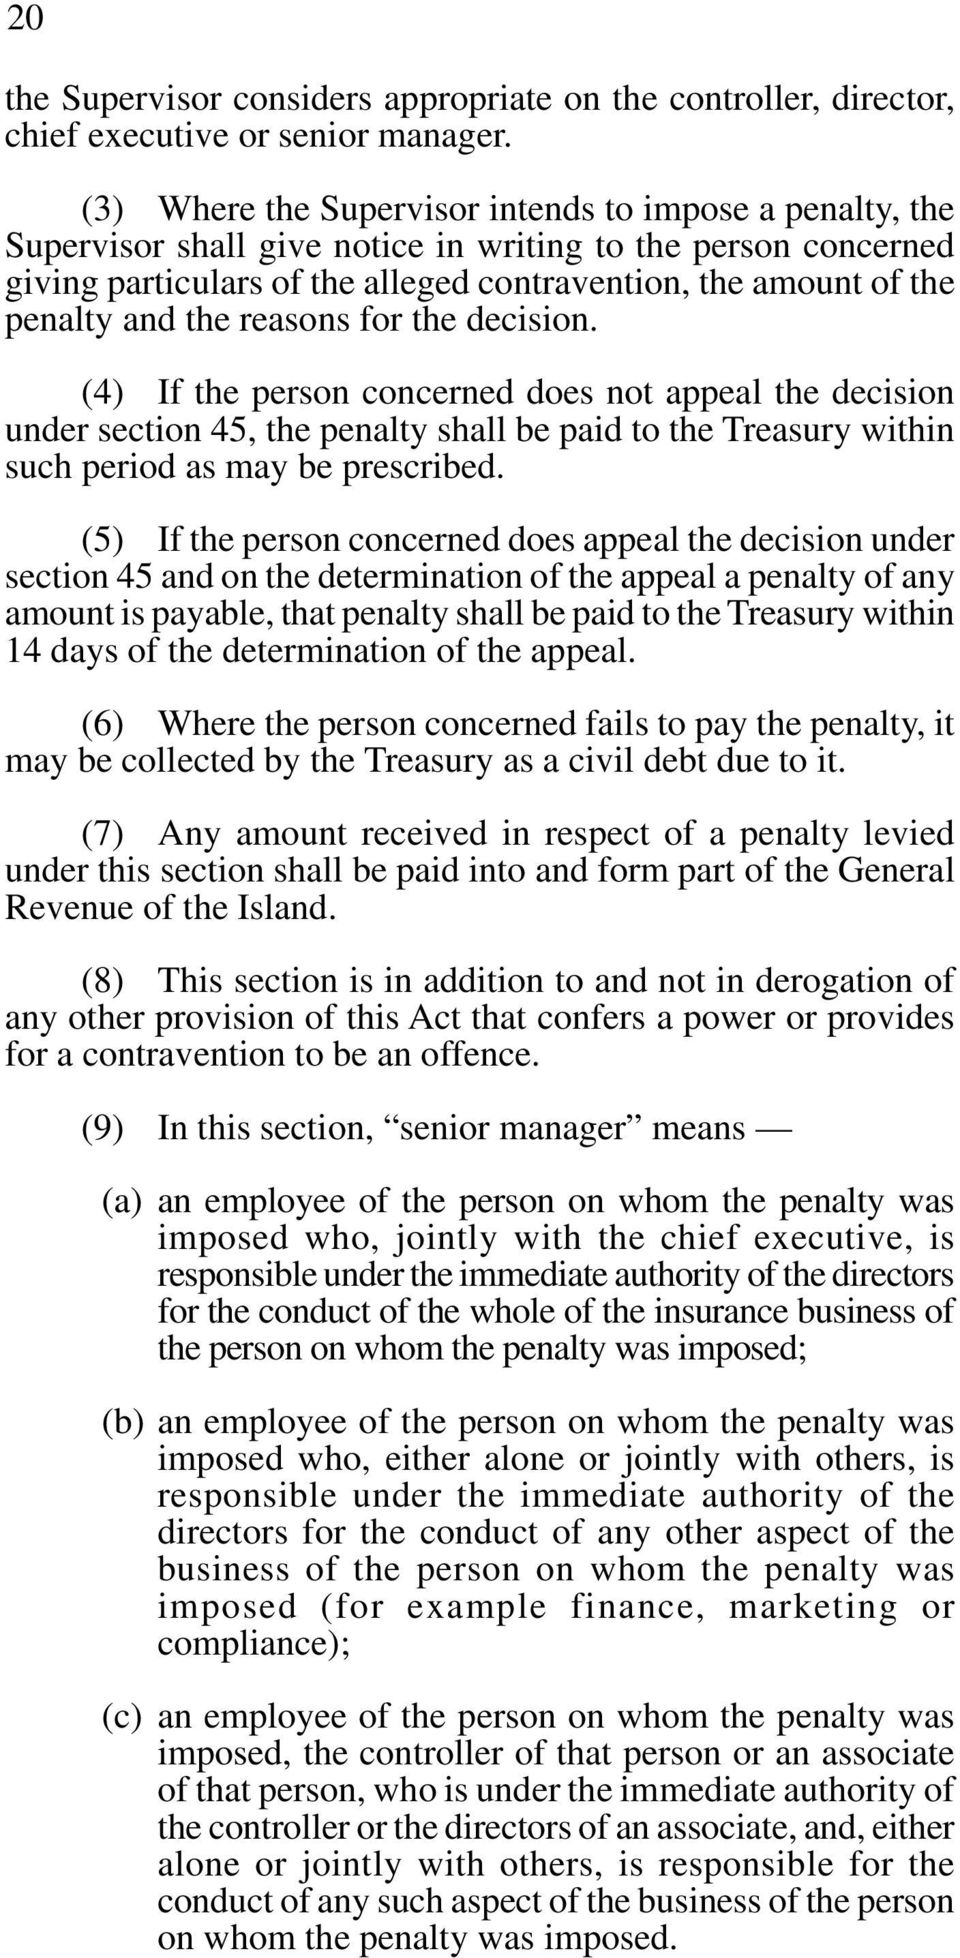 and the reasons for the decision. (4) If the person concerned does not appeal the decision under section 45, the penalty shall be paid to the Treasury within such period as may be prescribed.